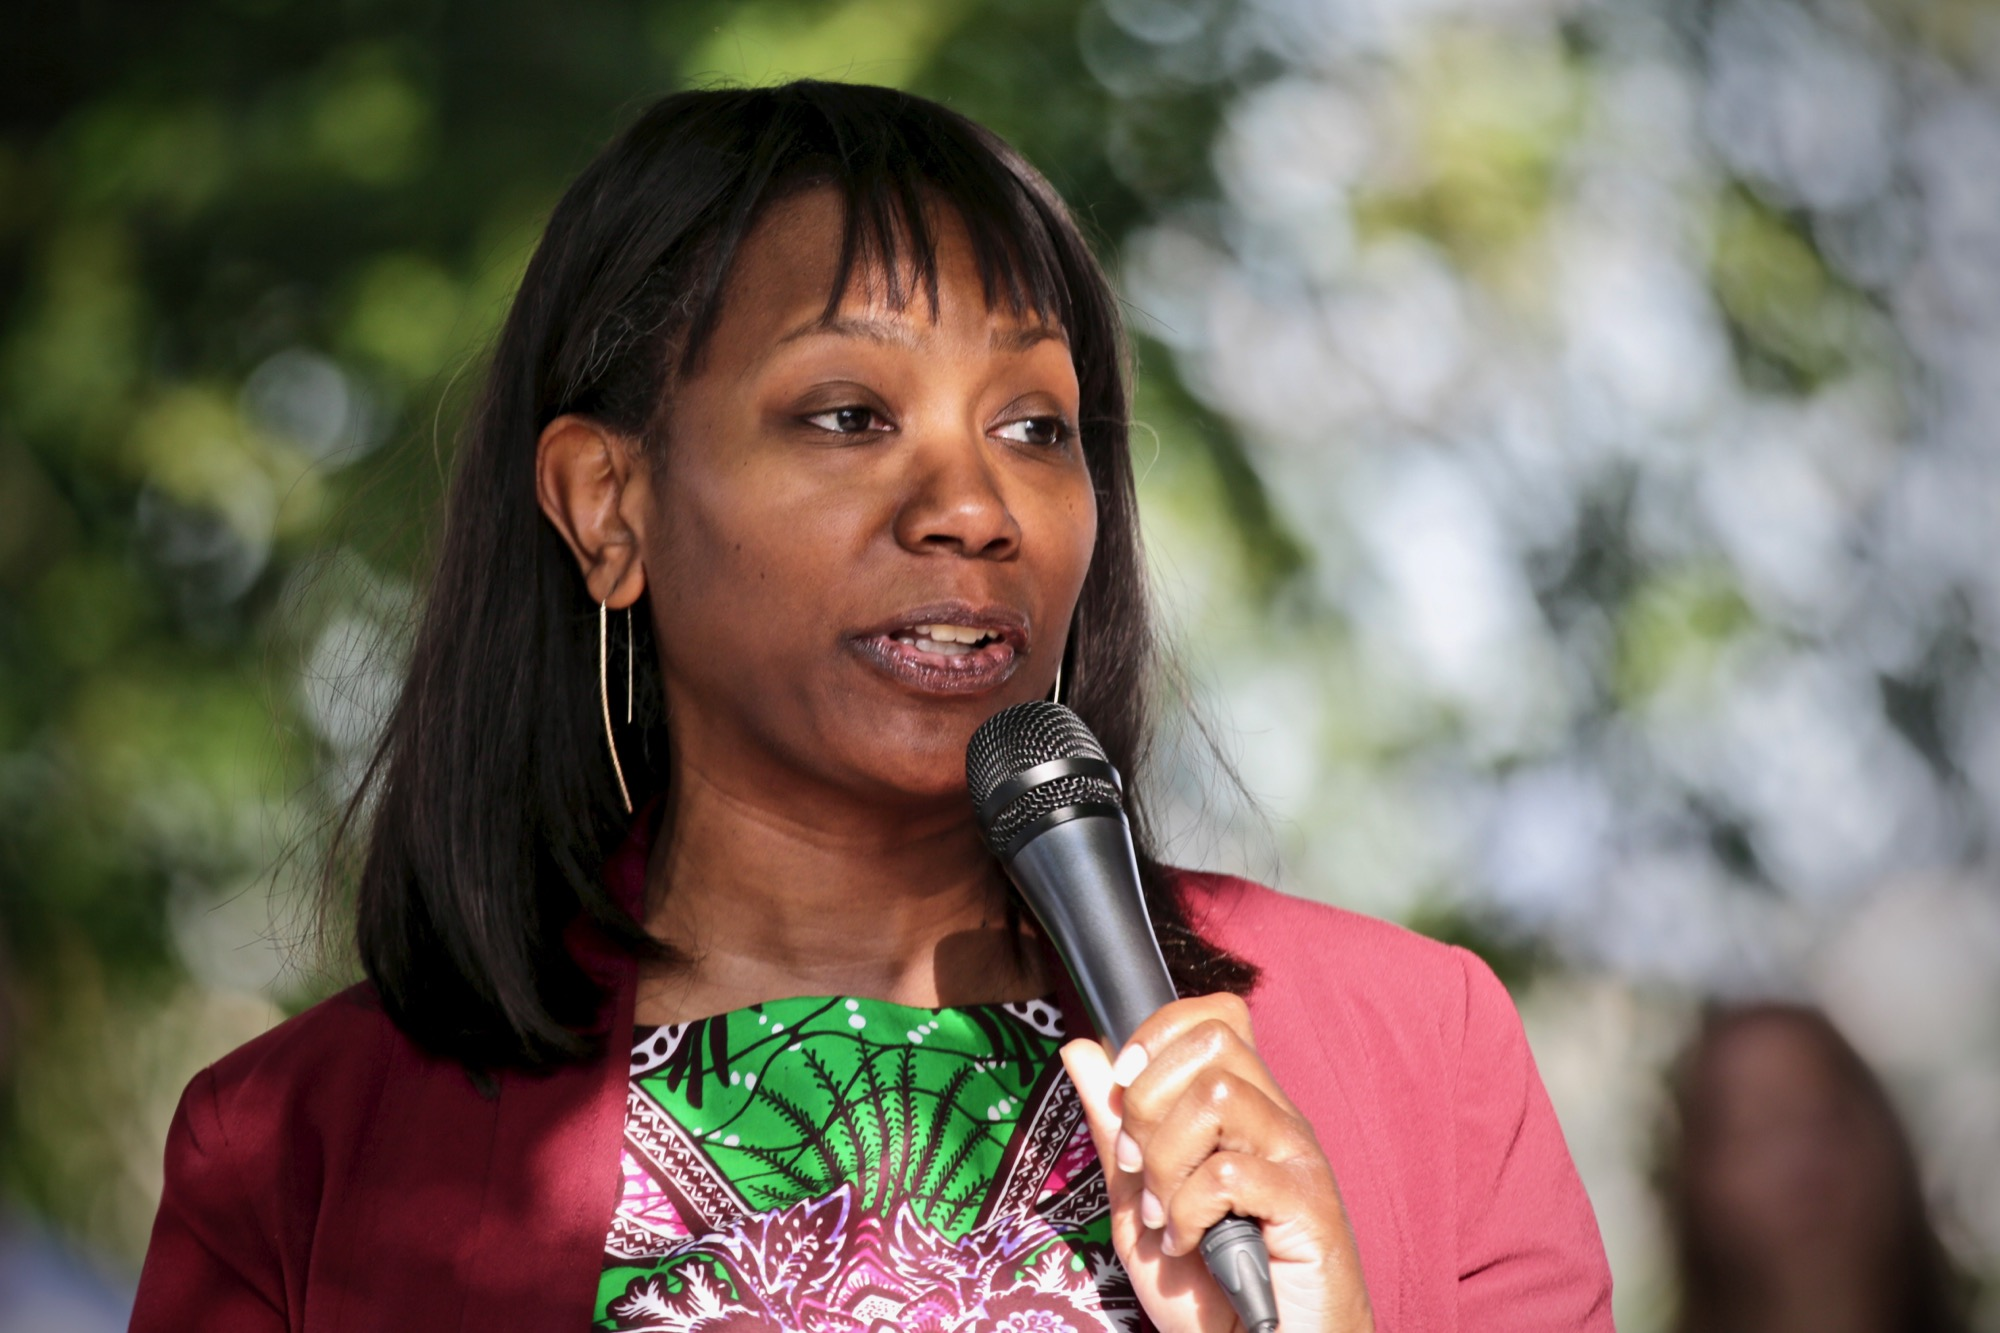 Pastor and UC Colorado Springs Professor Stephany Rose Spaulding at a picnic-style candidate forum hosted by Indivisible Denver to introduce Democrats running to unseat Republican U.S. Sen. Cory Gardner in 2020, held at Barnum Park on Sunday, June 9, 2019.